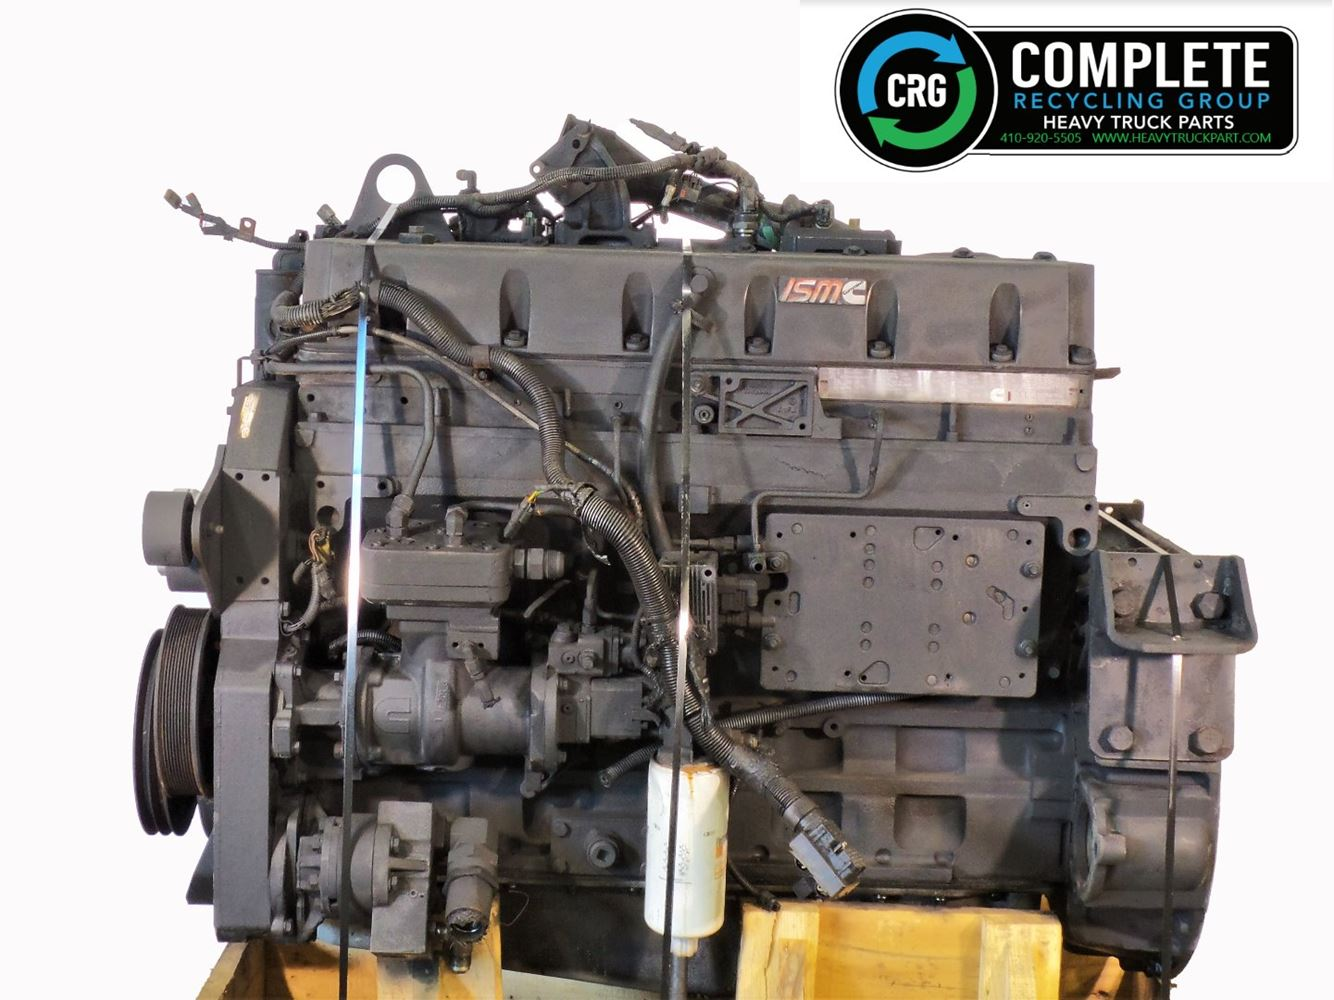 2005 CUMMINS ISM ENGINE ASSEMBLY TRUCK PARTS #680030